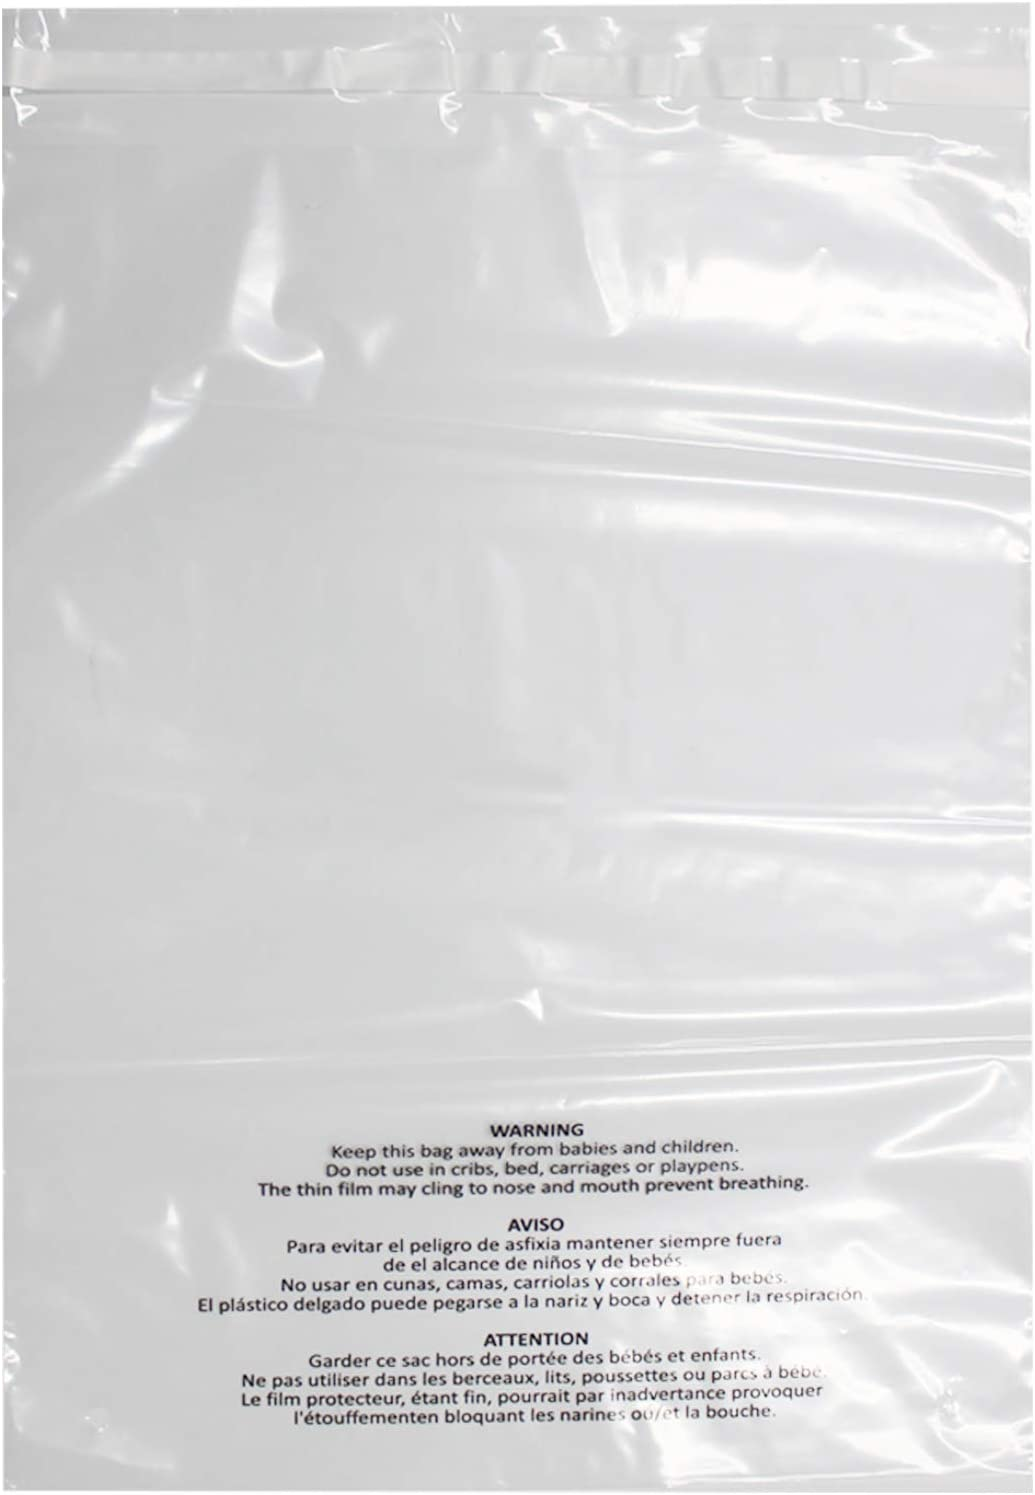 depot Belinlen 300 Count Choice 9x12 Inch Self Poly Bags Clear with Suff Seal